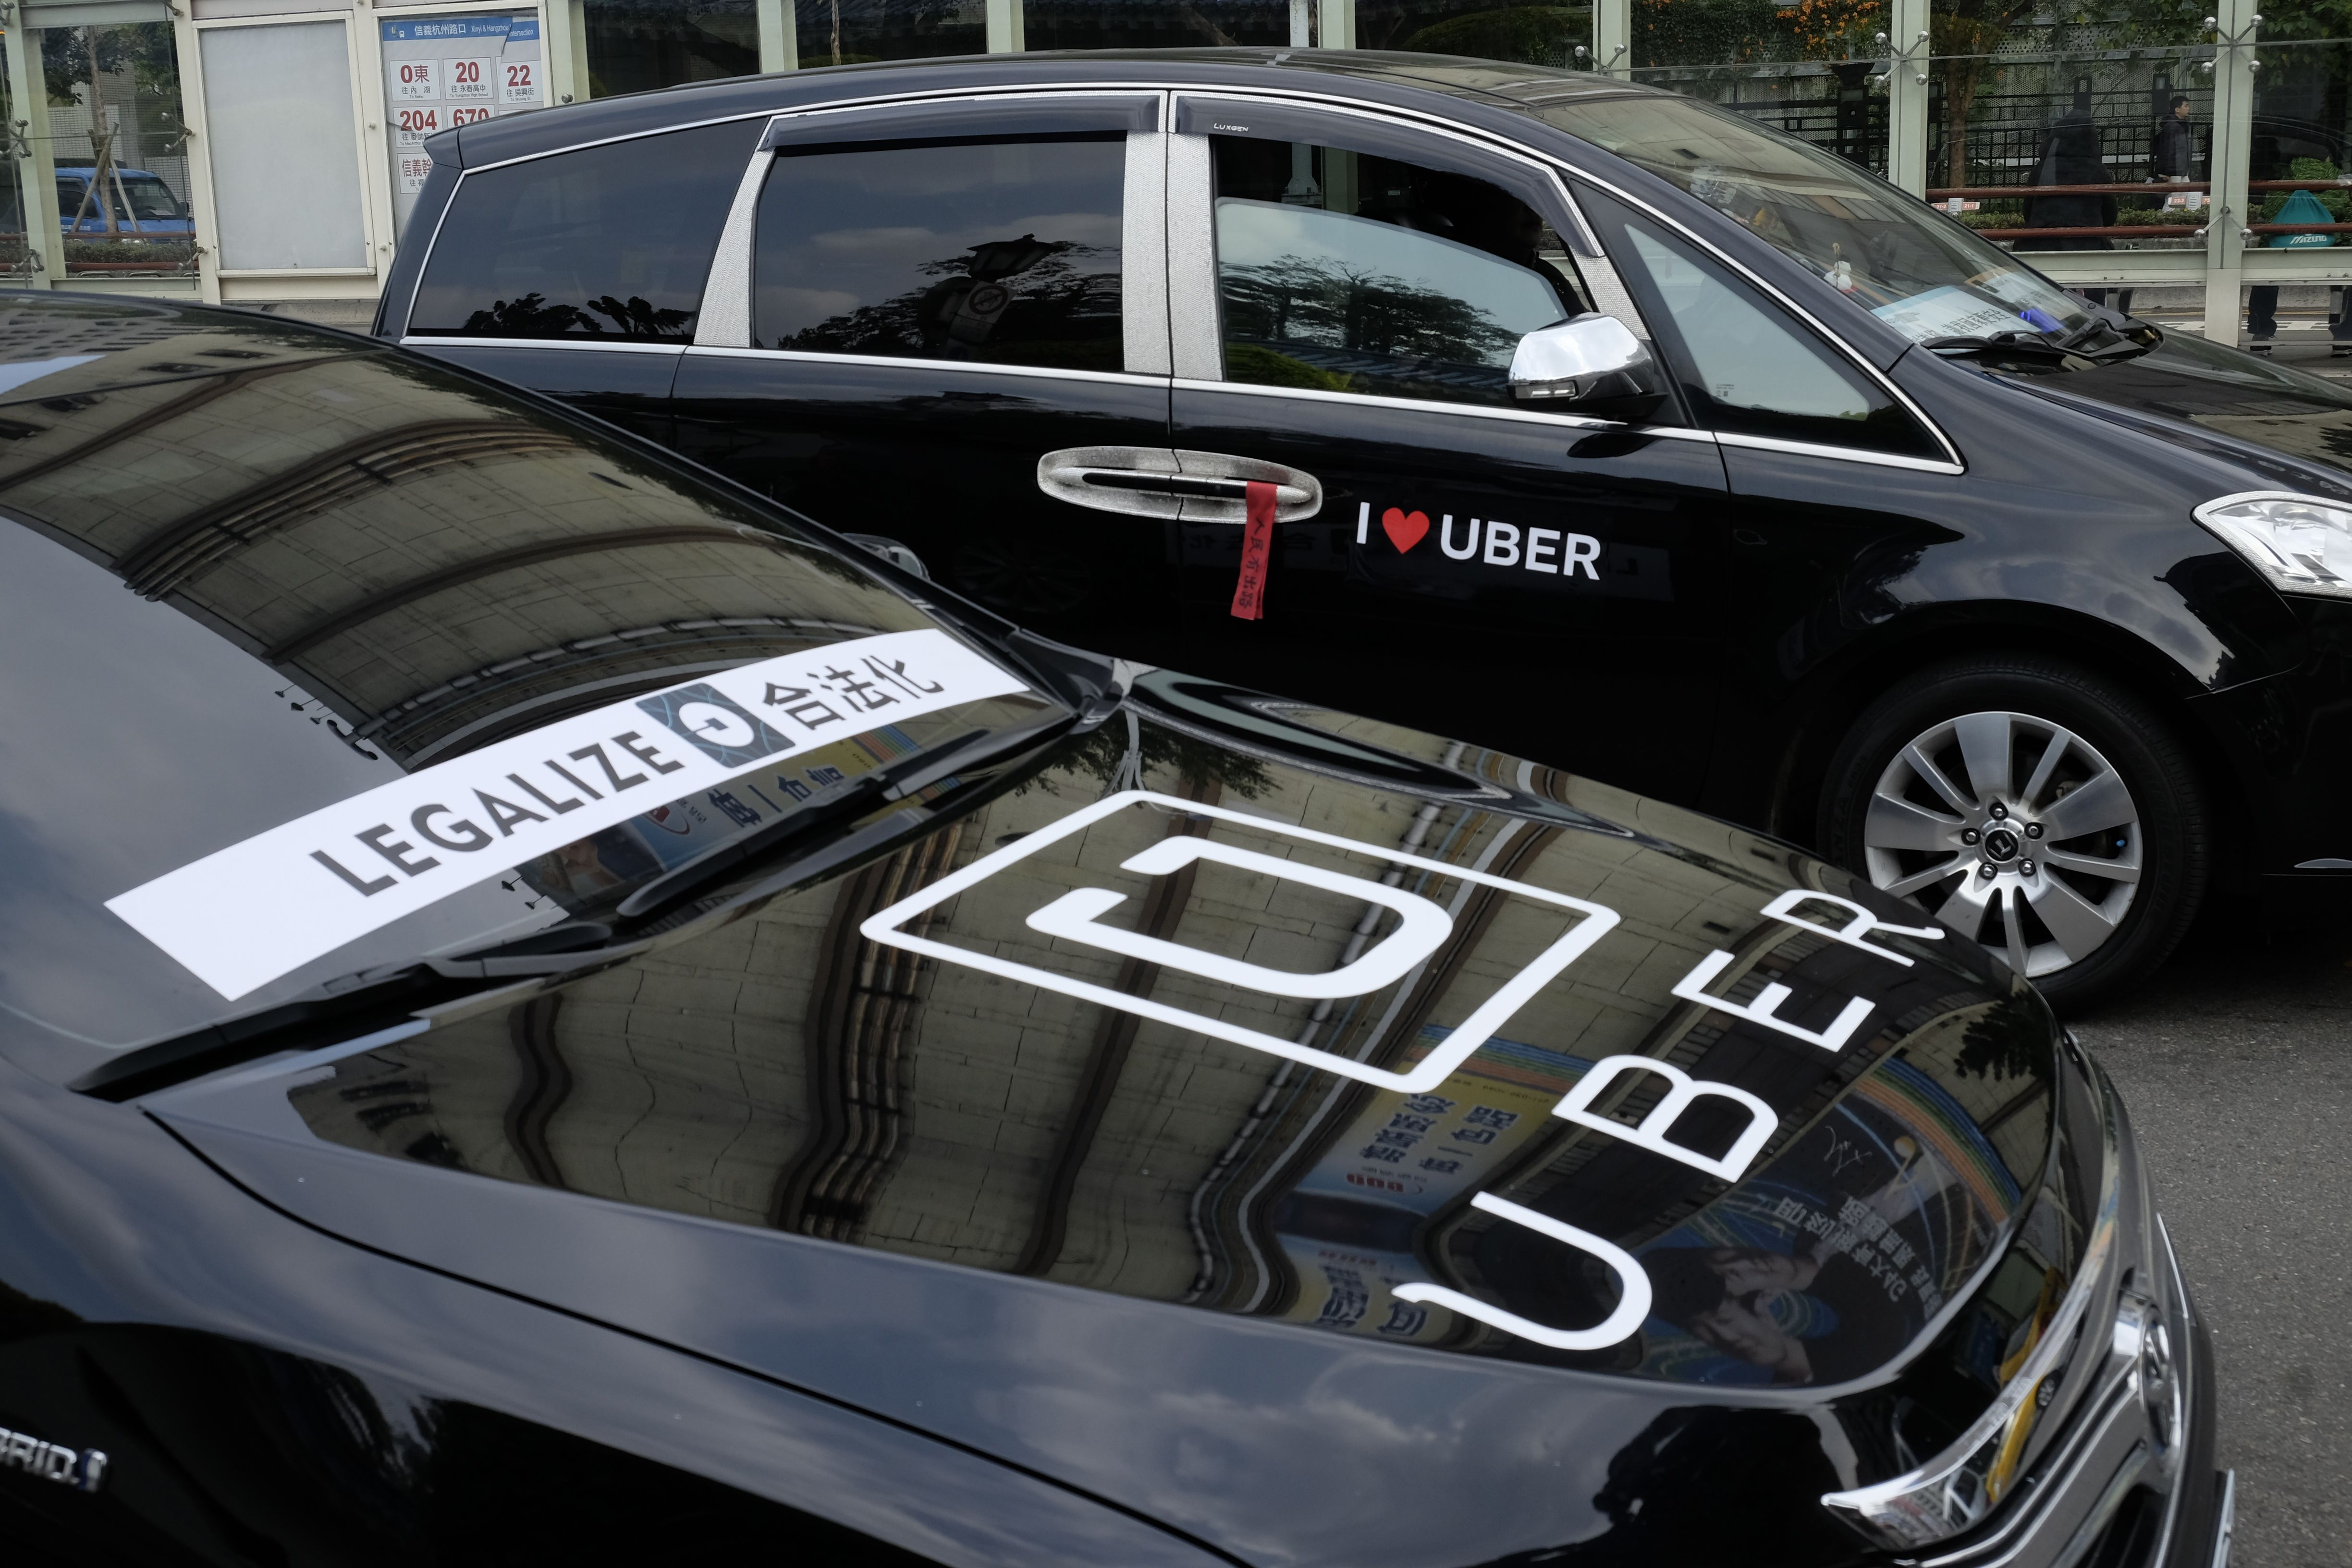 TAIWAN-TRANSPORT-UBER-TECHNOLOGY-PROTEST